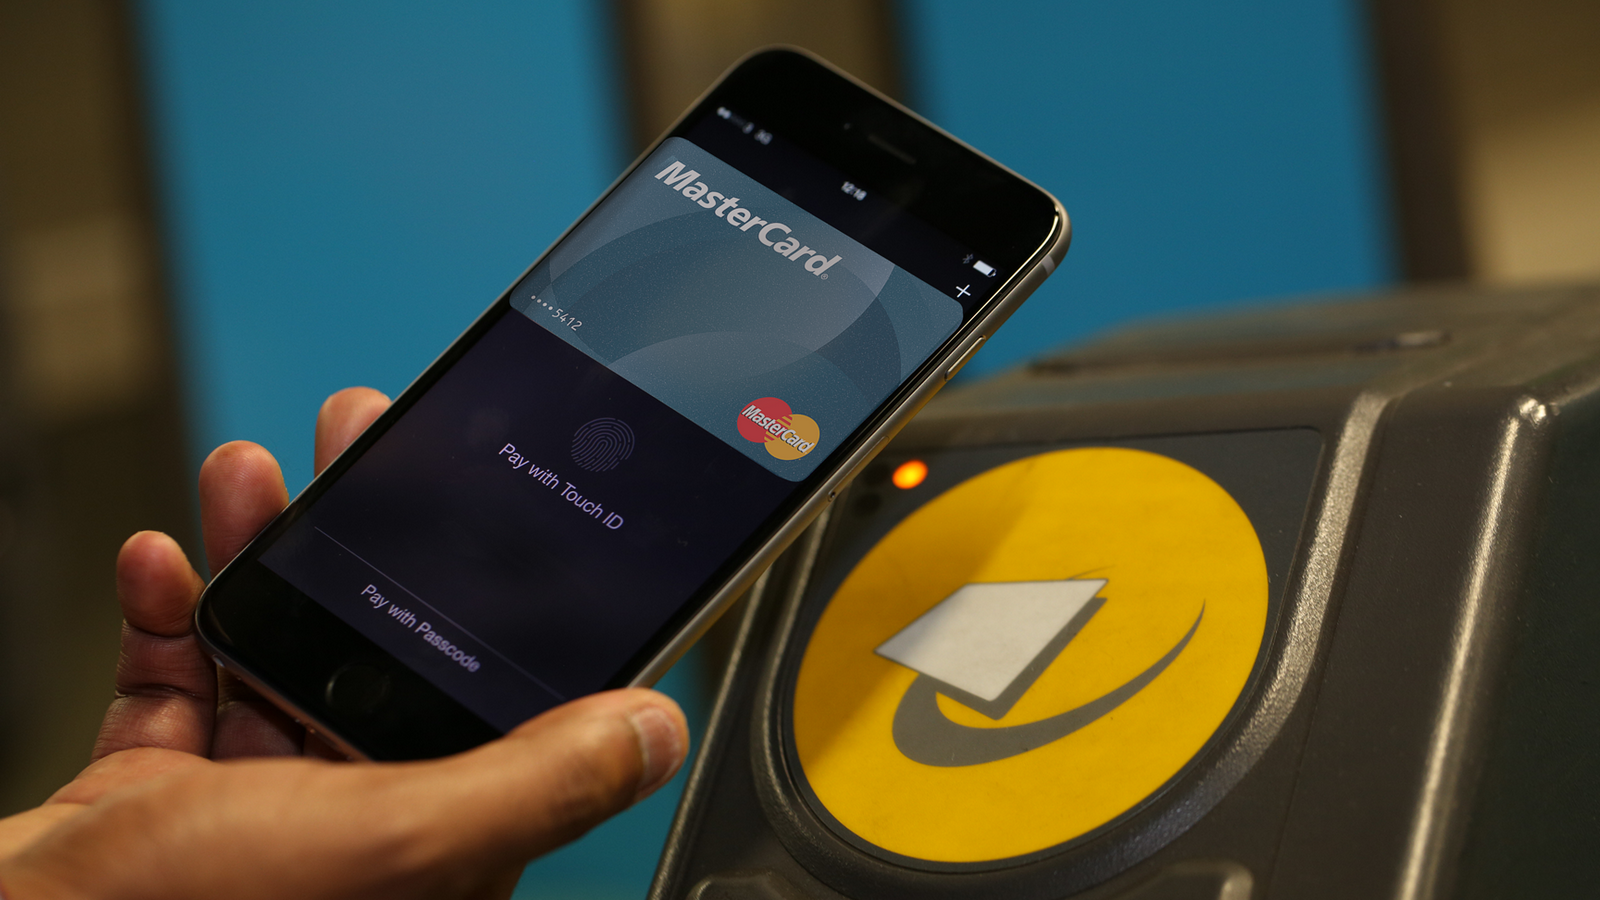 Users of Apple Pay got free use.